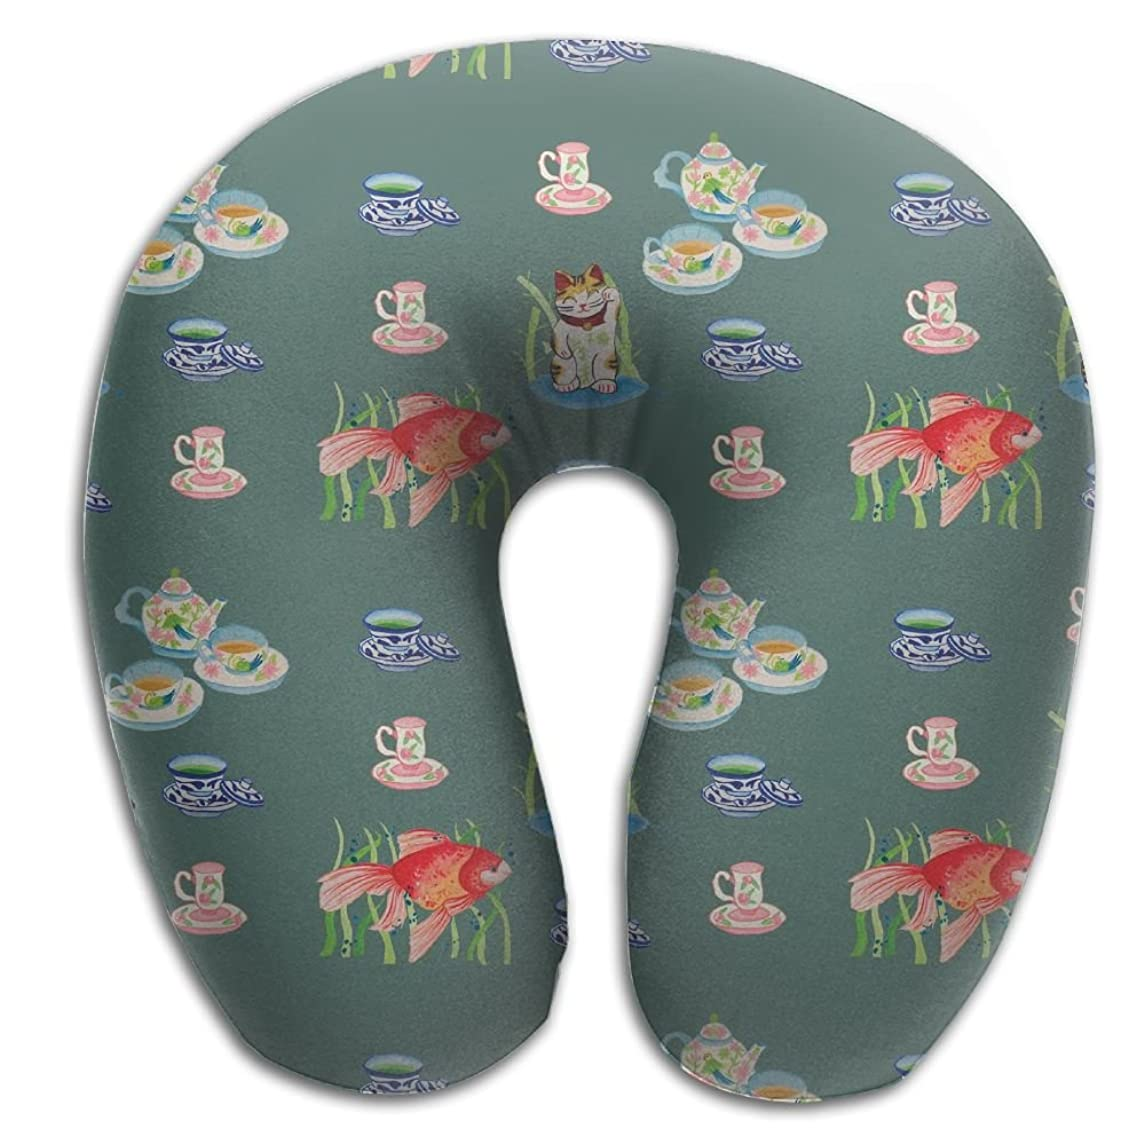 Memory Foam Neck Pillow Cup Fish Pattern Comfy Soft U-Shape Cervical Pillow Head Support For Travel Office Sleeping